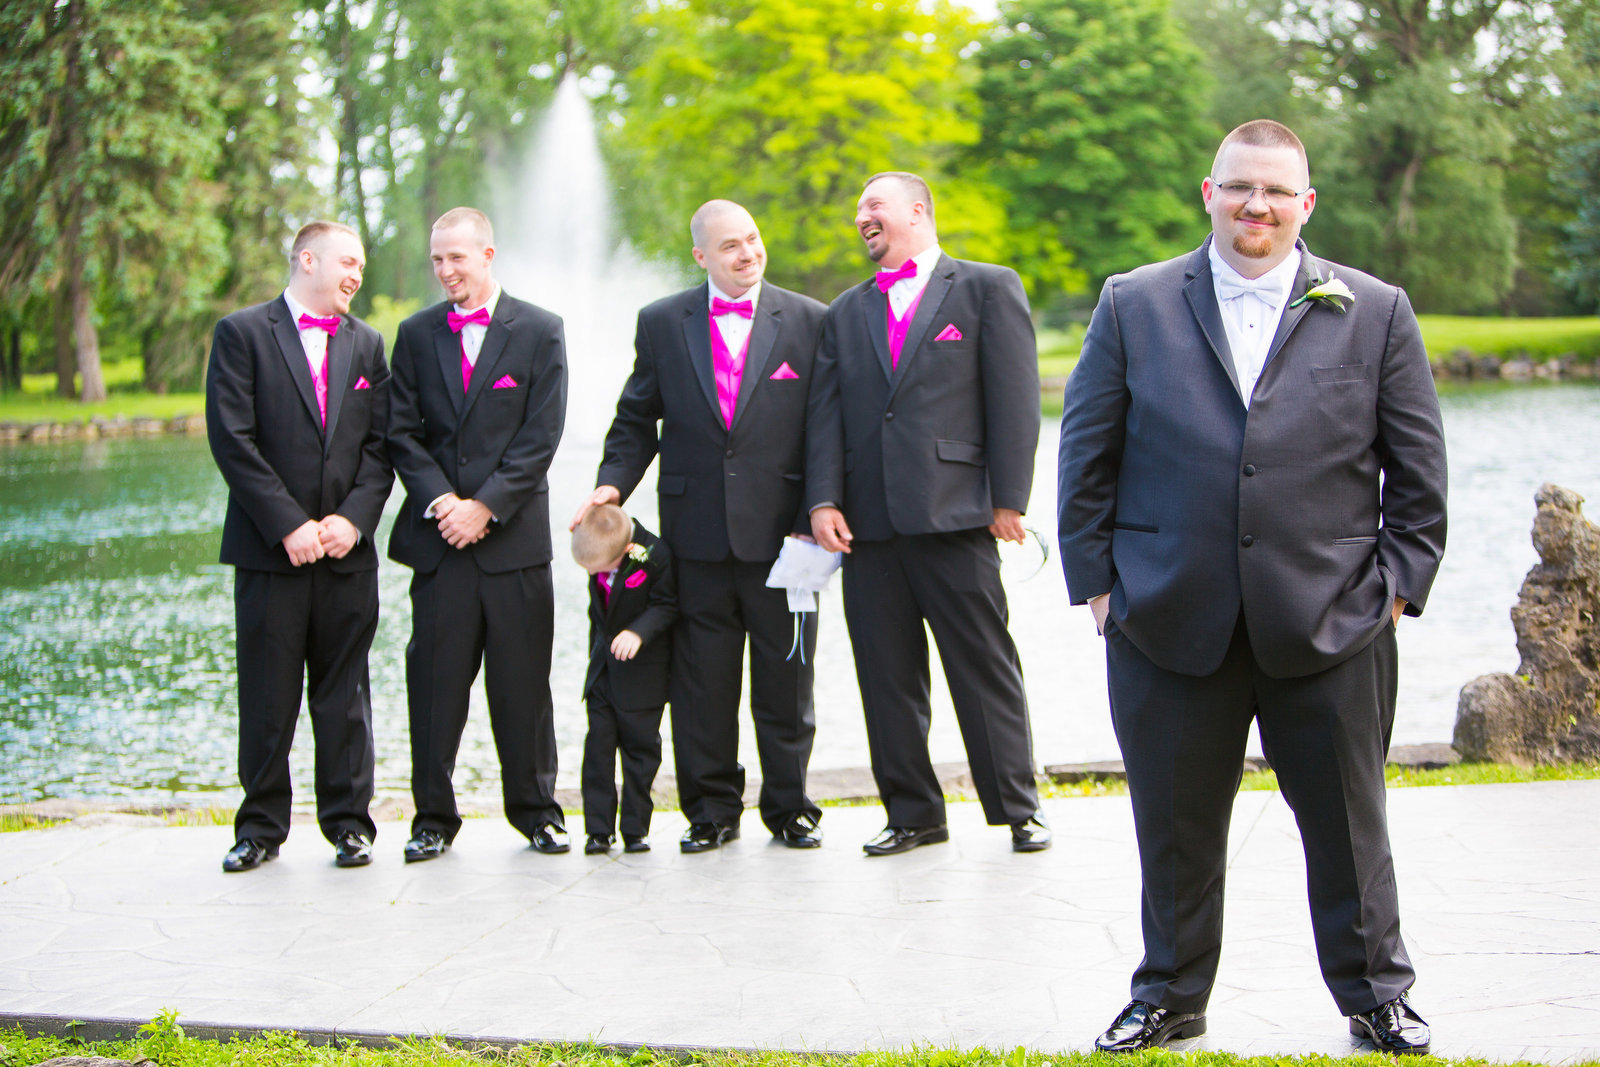 wedding photography groom and groomsmen